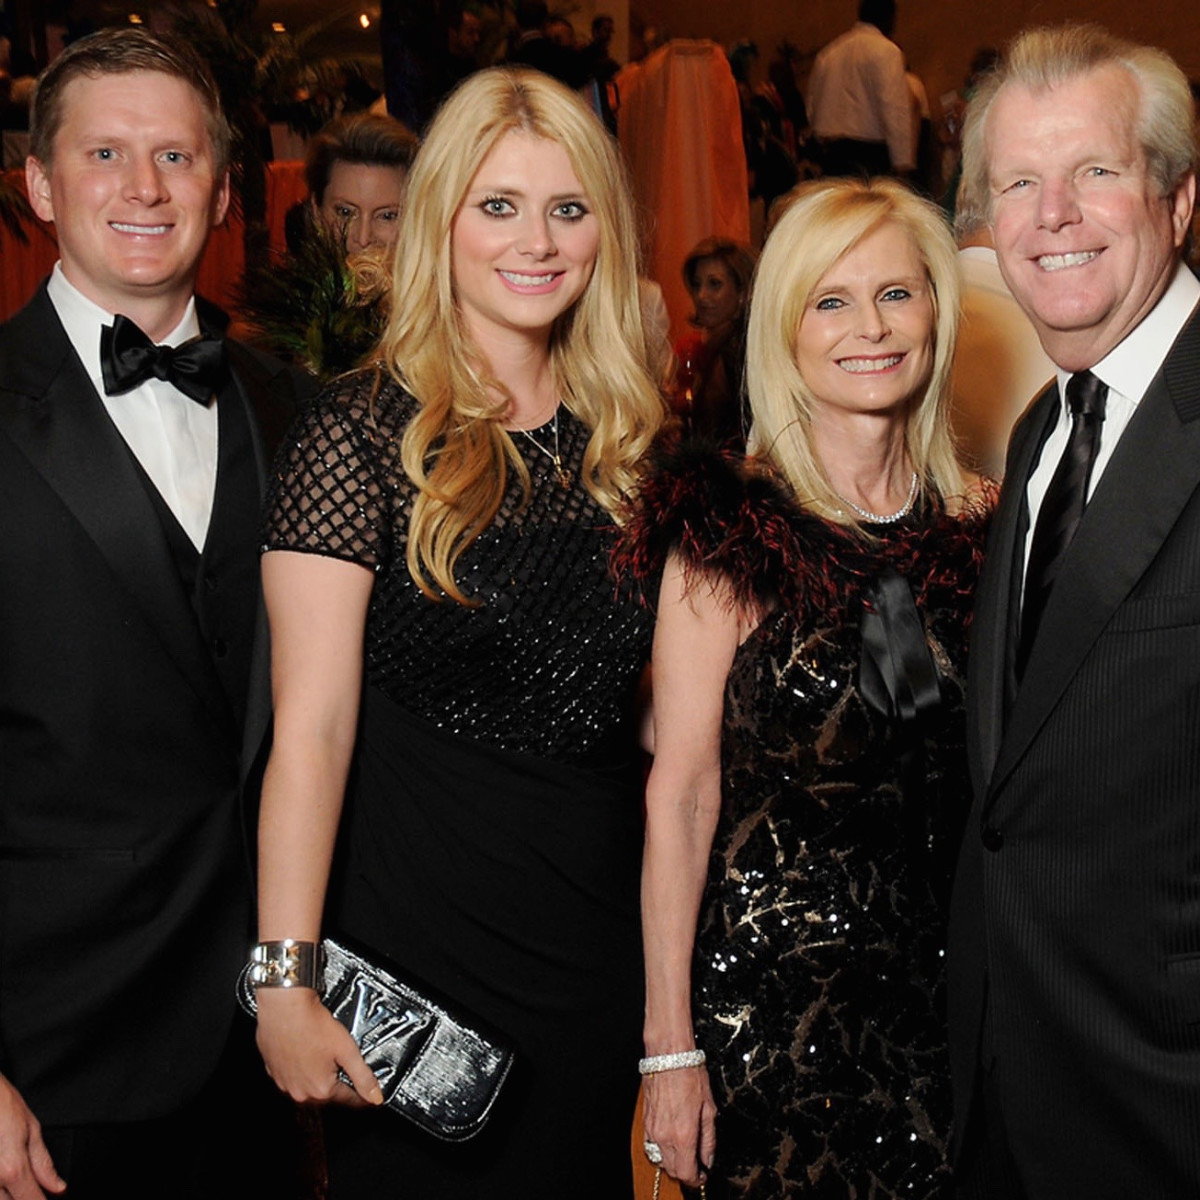 Symphony Ball 5/16, Bill Gutknecht and Christine Falgout-Gutknecht, Jo Lynn and Greg Falgout.